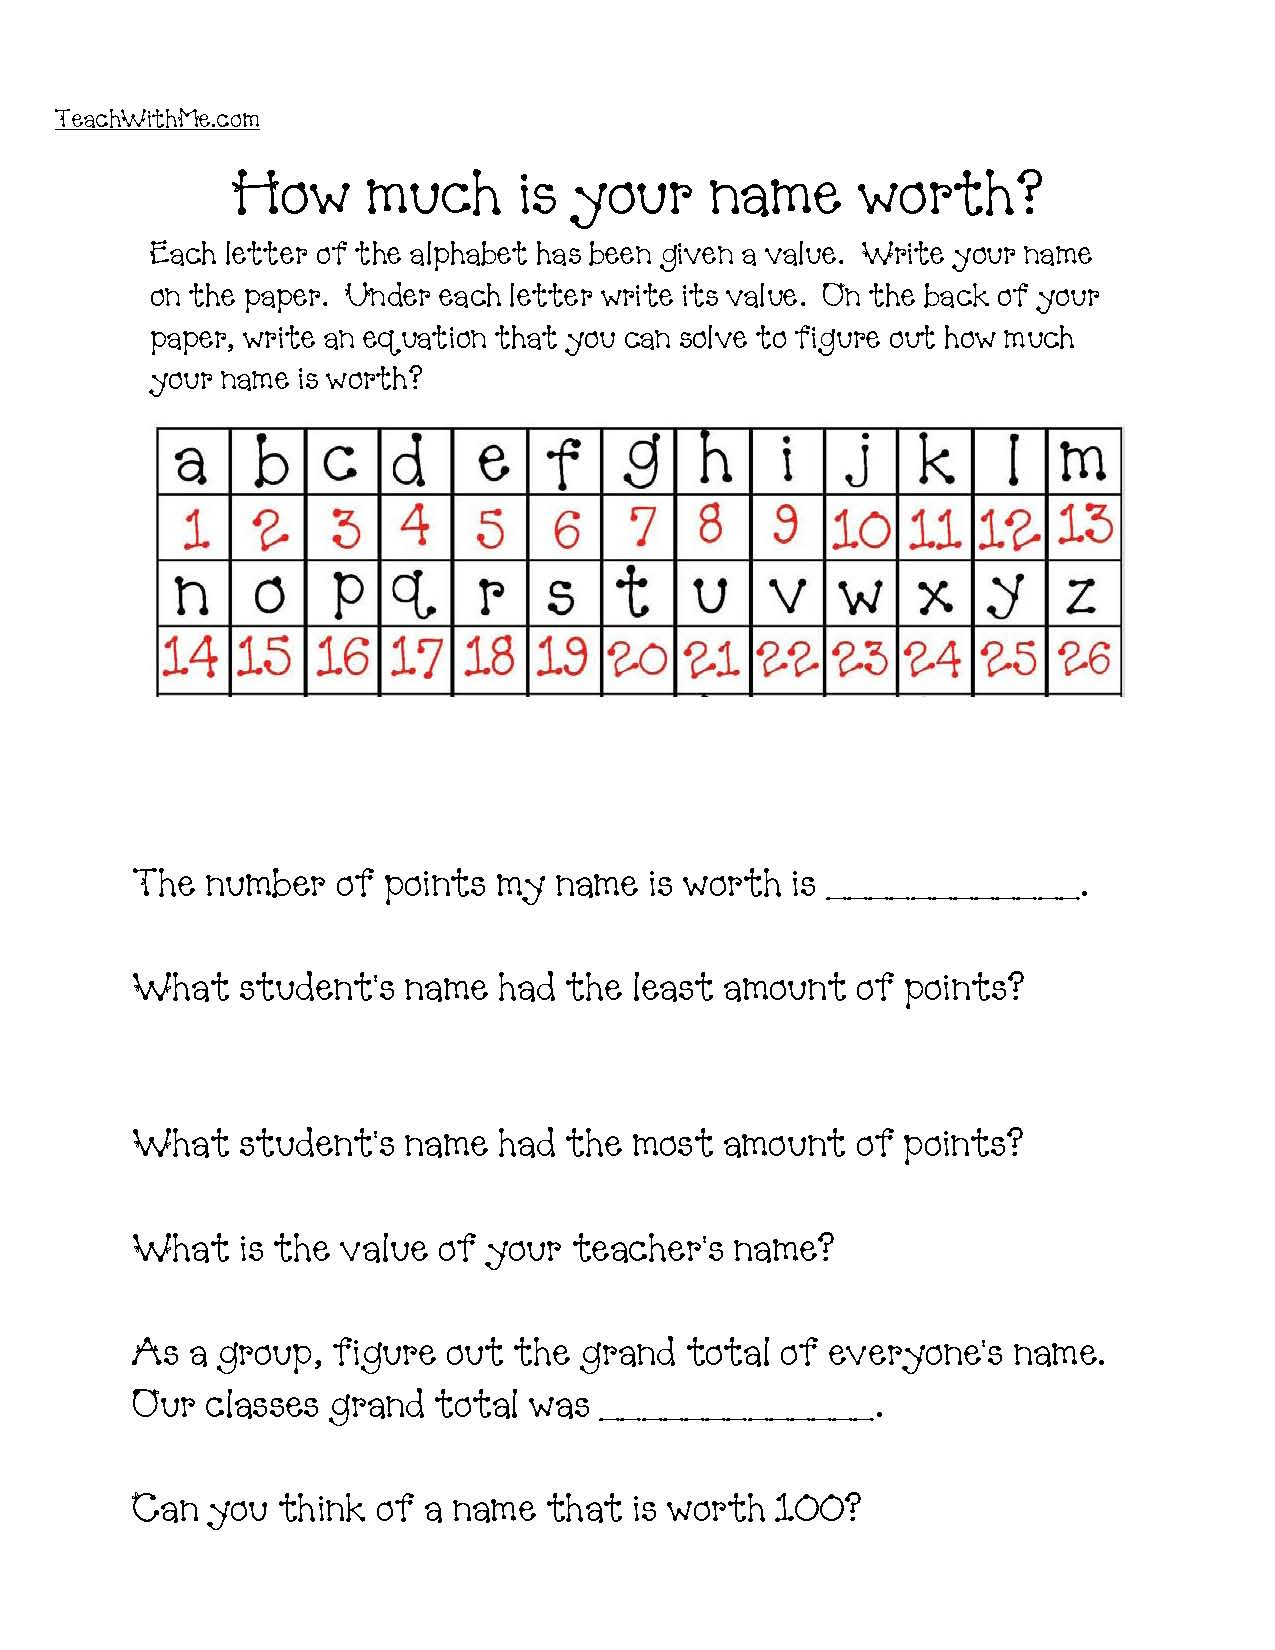 dollar words, 100 dollar words, how much is your name worth worksheet, 100 point words, dollar word clues, list of dollar words,dollar word game, dollar word list, 740 list of dollar words, 100 day games, 100 day centers, 100 day activities, 100 day ideas 100 day lessons, 100 day math activities, counting to 100 activities, addition games, addition activities, 100 dollar point grid,